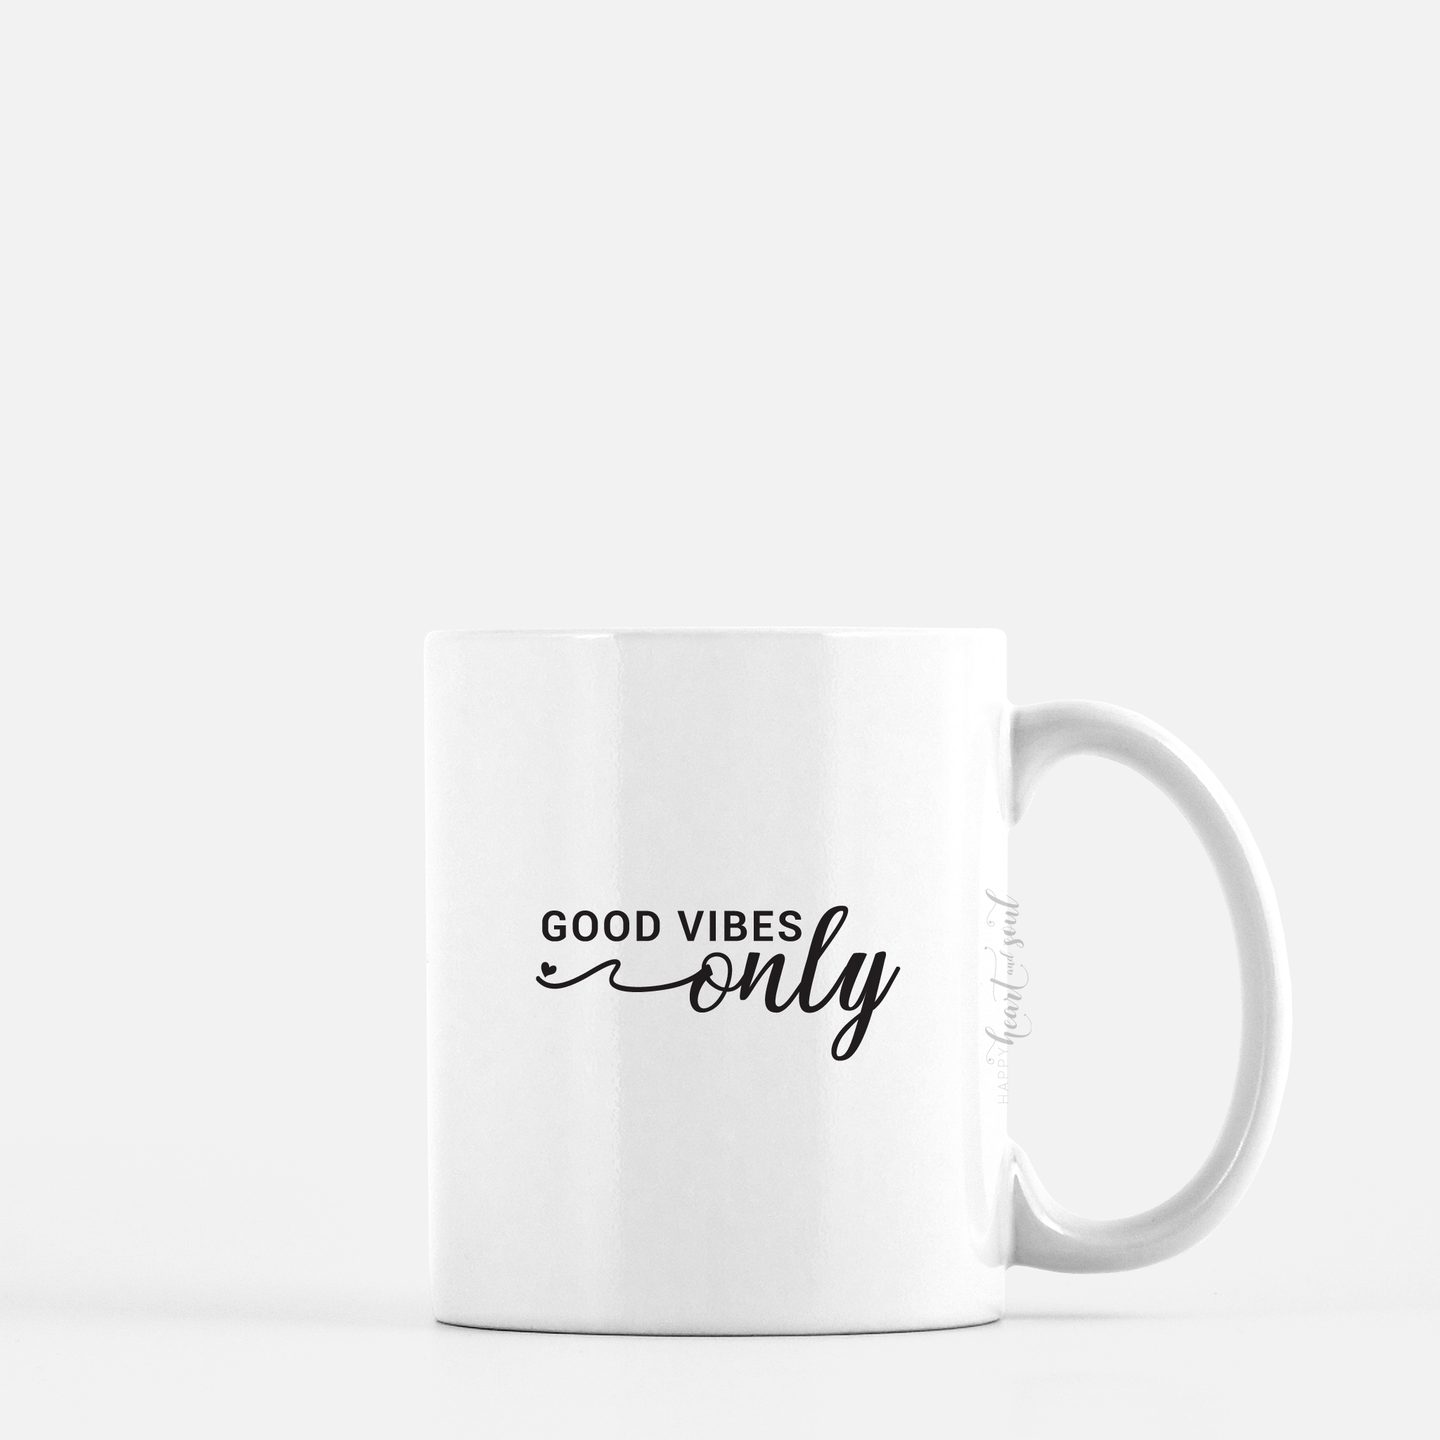 white ceramic mug with black writing saying good vibes only. plain white background